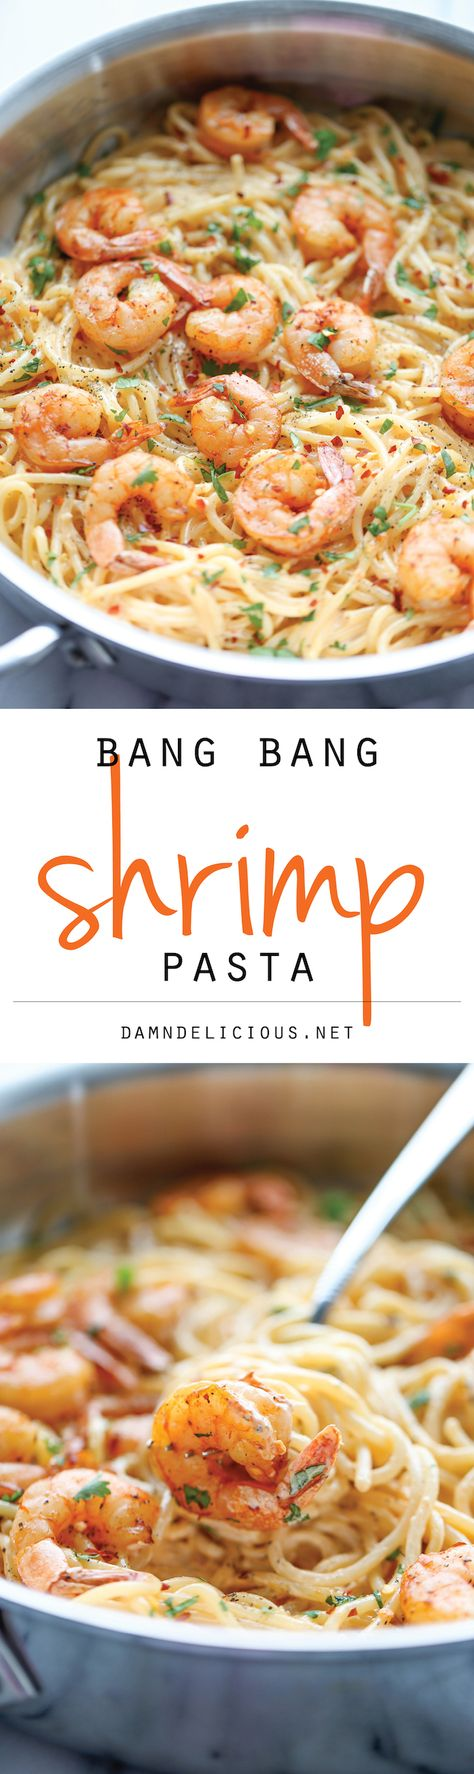 Bang Bang Shrimp Pasta - The favorite bang bang shrimp is turned into the creamiest, easiest pasta dishes of all!